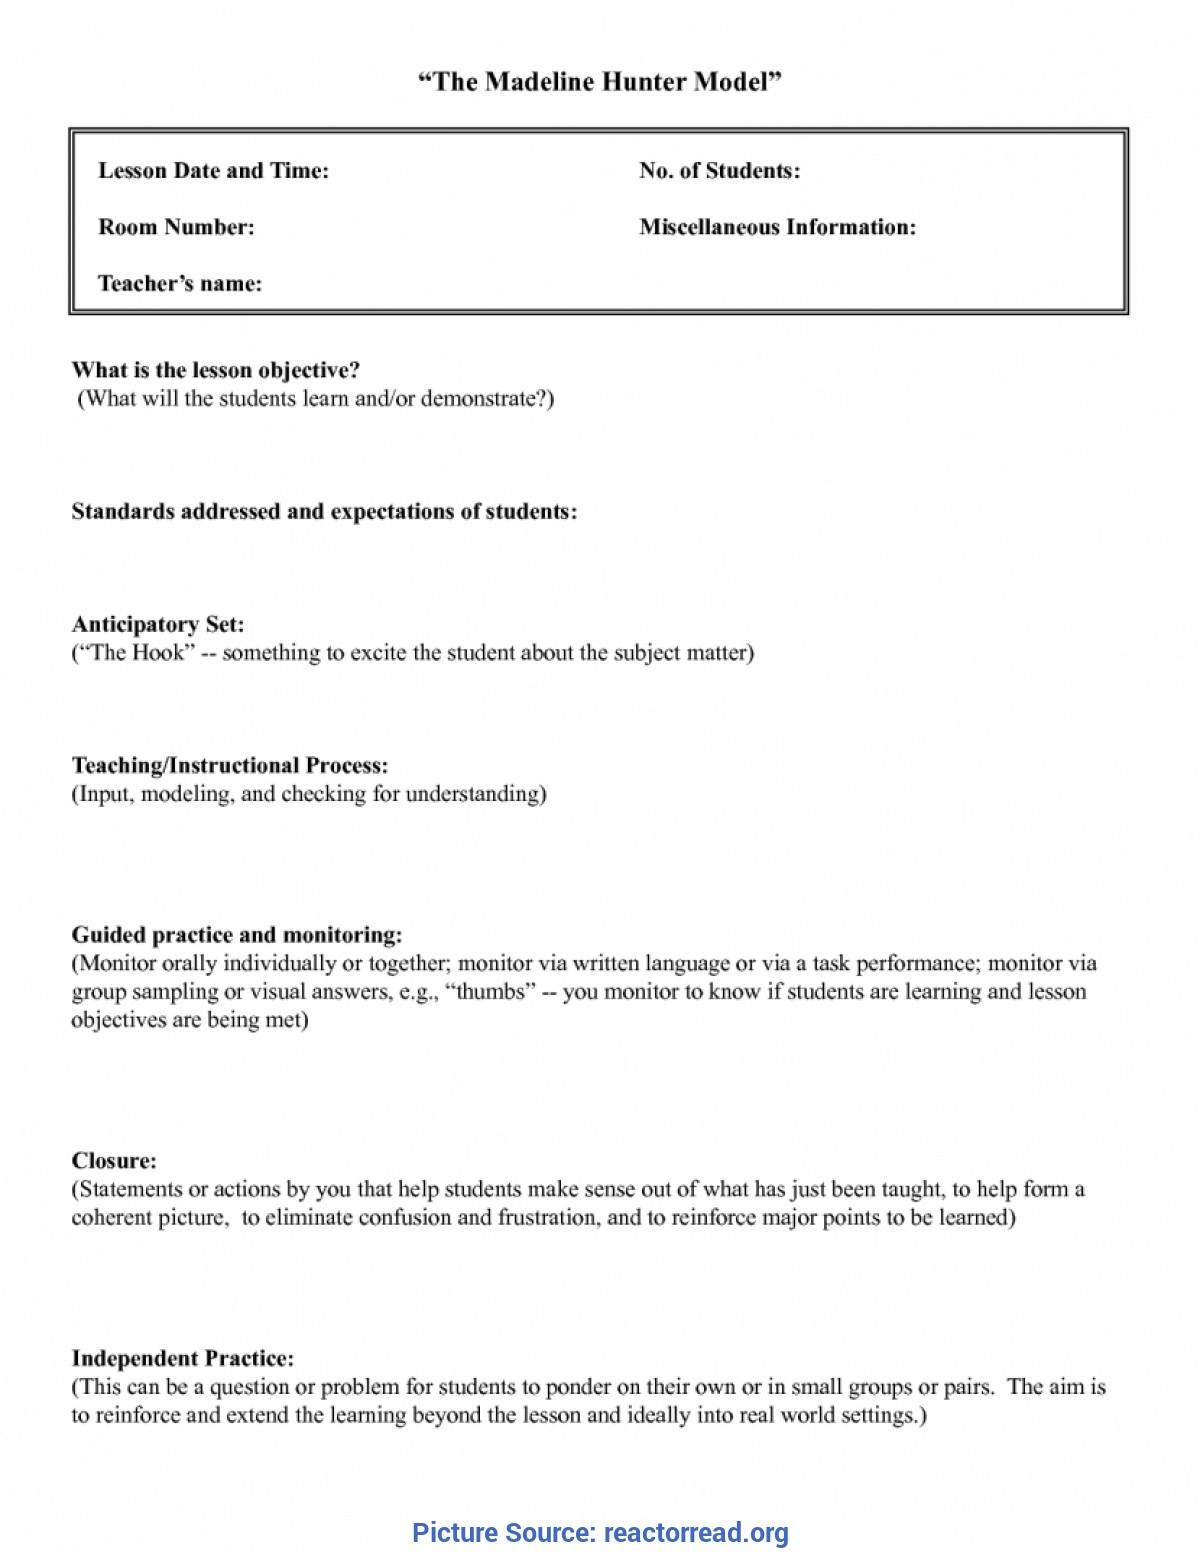 Typical Itip Lesson Plan Template Itip Lesson Plan Format   Reactorread